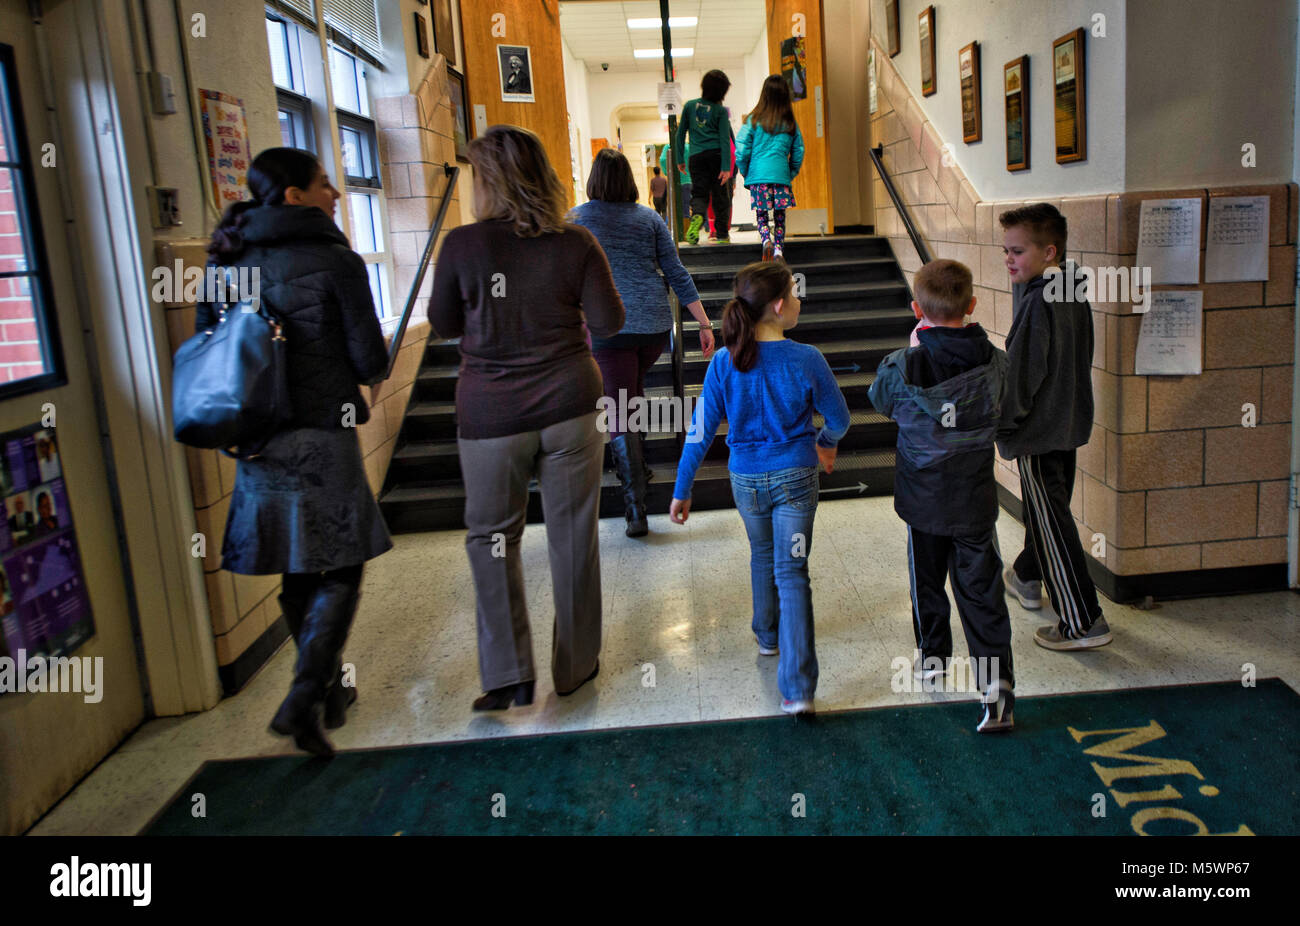 UNITED STATES: Feb. 26, 2018: LoudounÕs two charter schools once had a hard time filling classes but they now - Stock Image